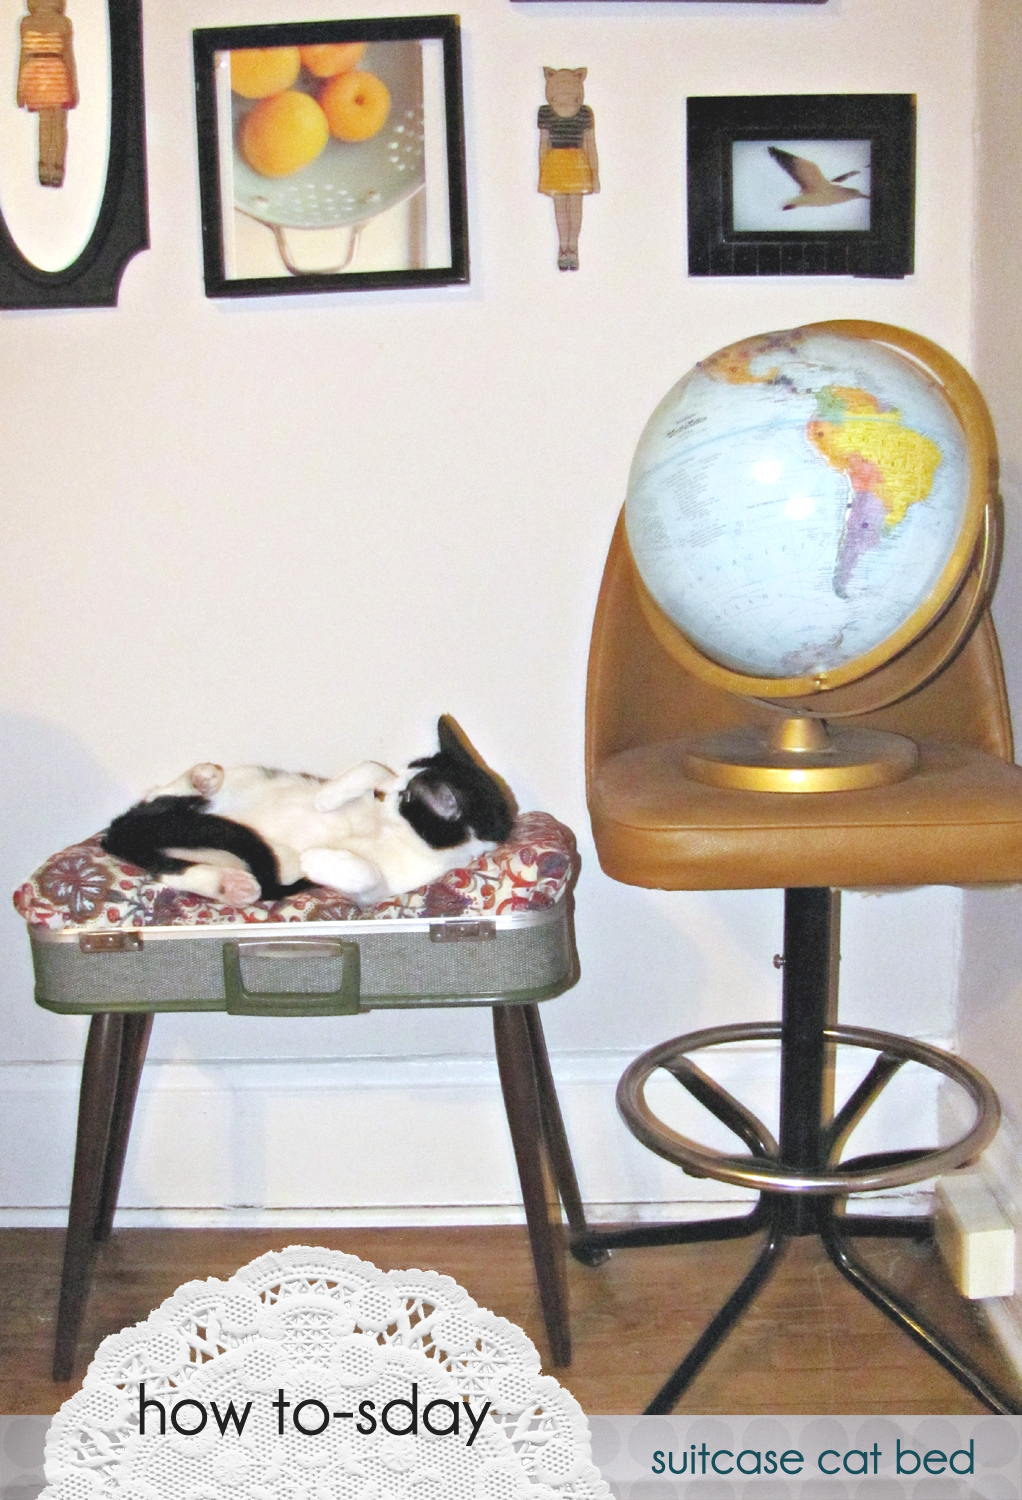 how to-sday . vintage suitcase cat bed - Shrimp Salad Circus